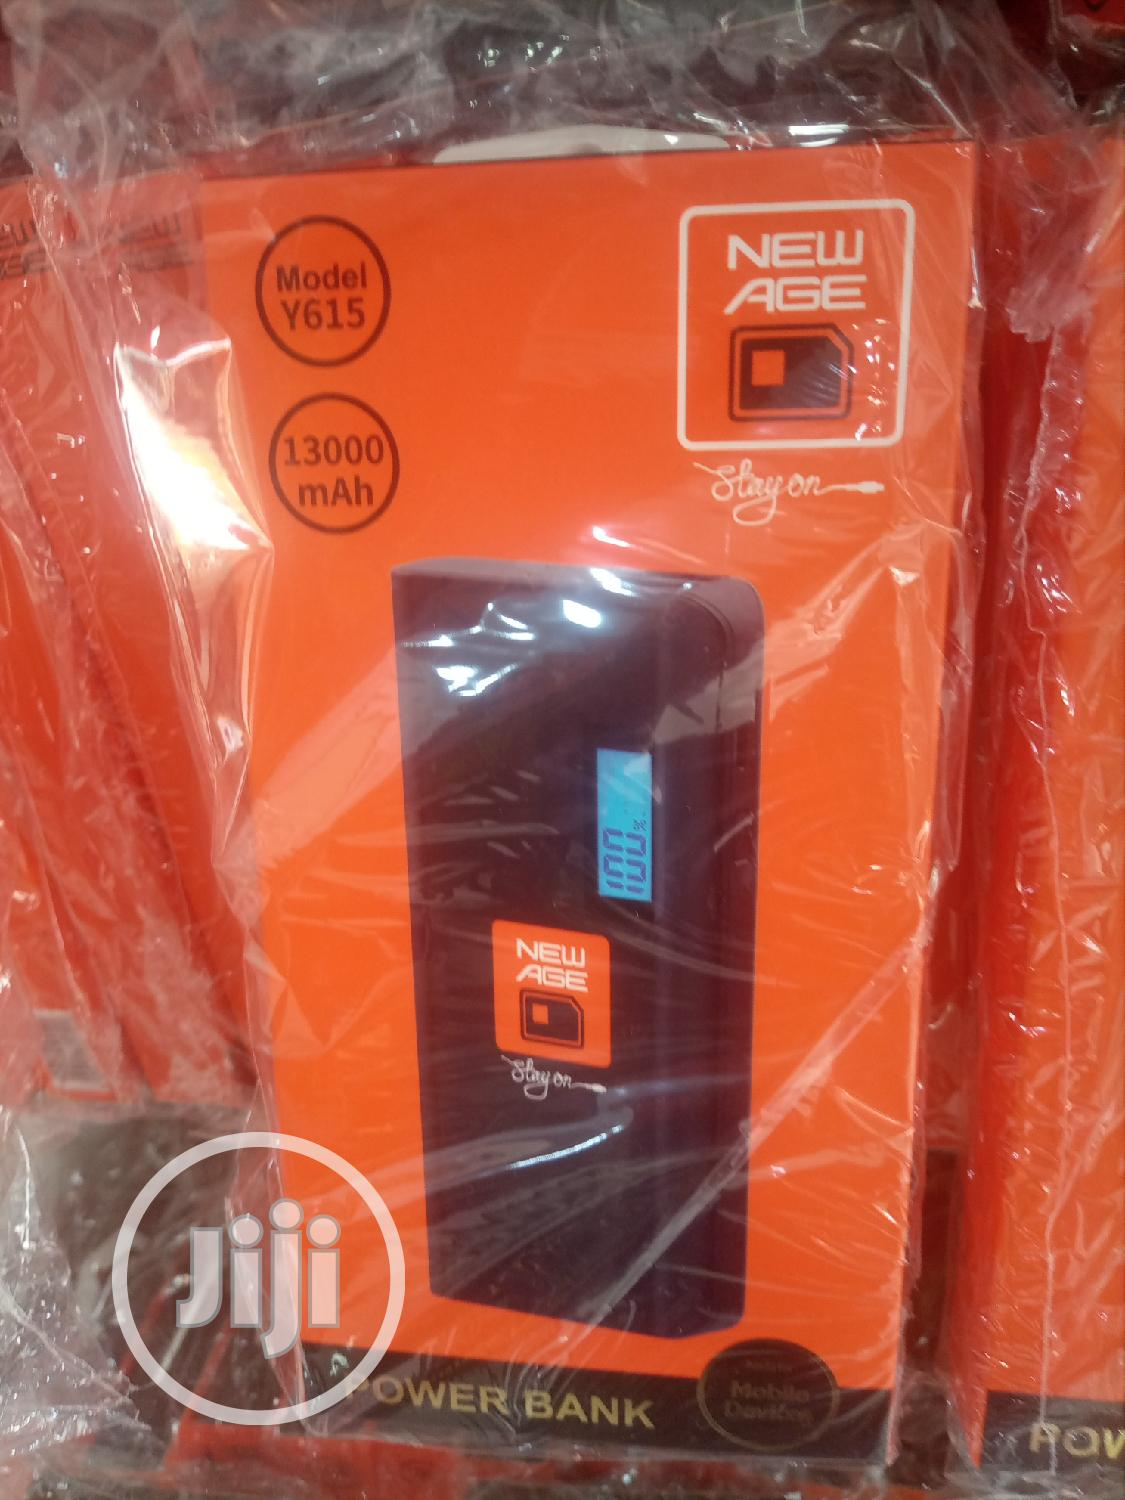 6500mah New Age Power Bank | Accessories for Mobile Phones & Tablets for sale in Ikorodu, Lagos State, Nigeria